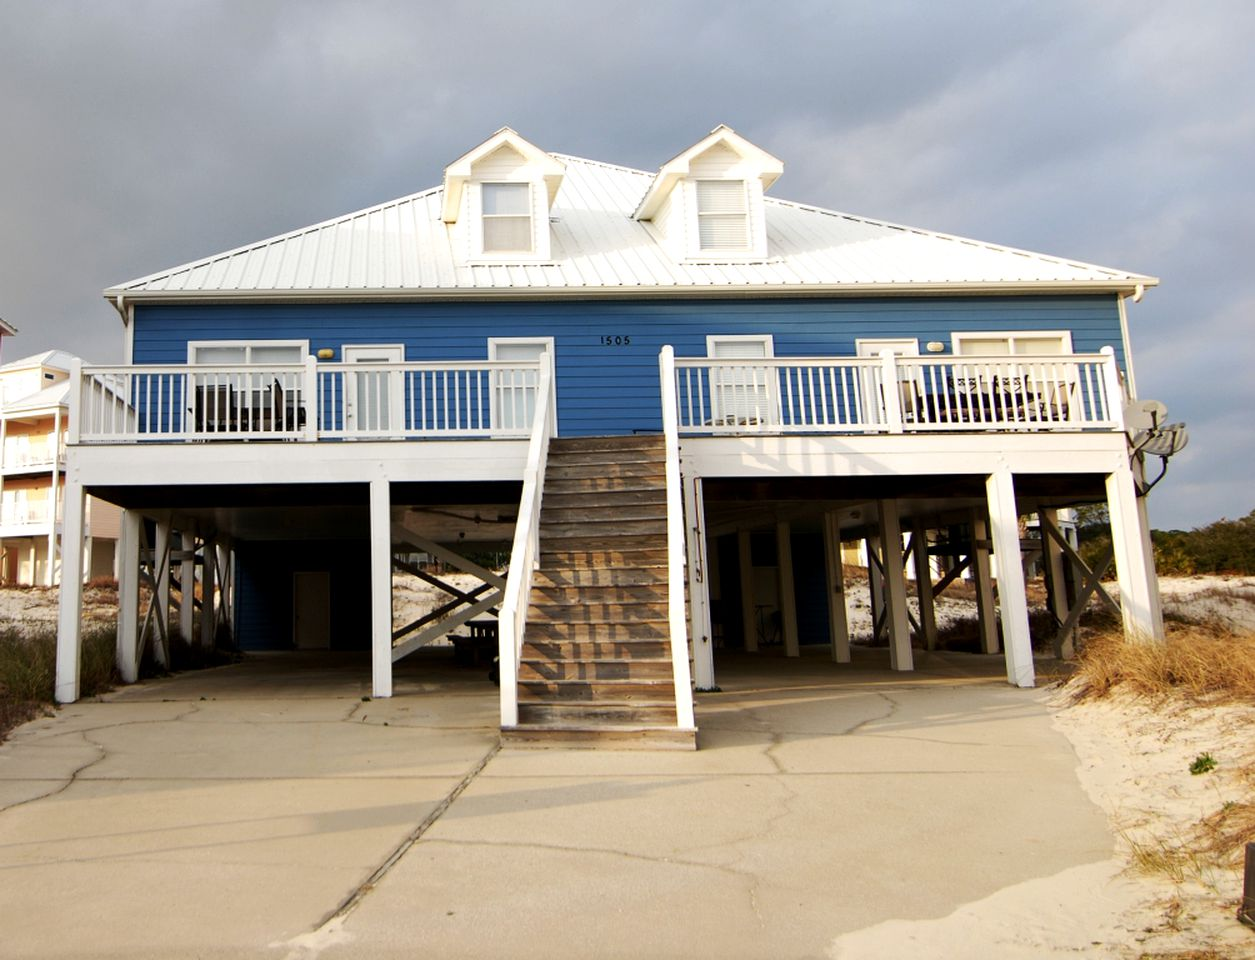 Beach Houses (Gulf Shores, Alabama, United States)